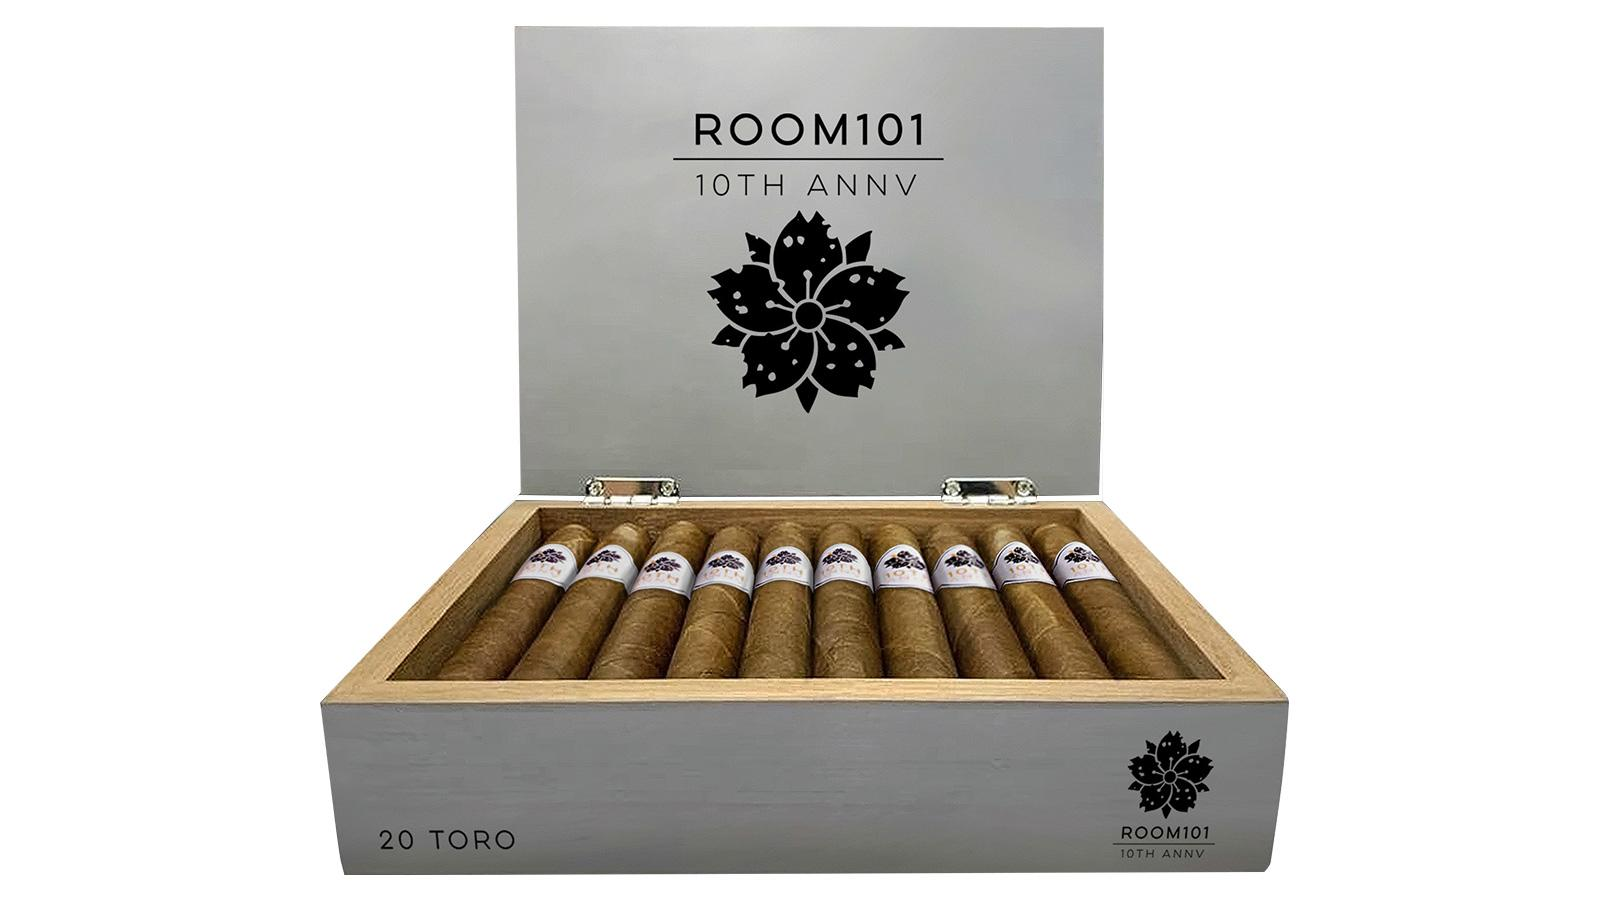 Room101 10th Anniversary Ships Nationwide Next Week